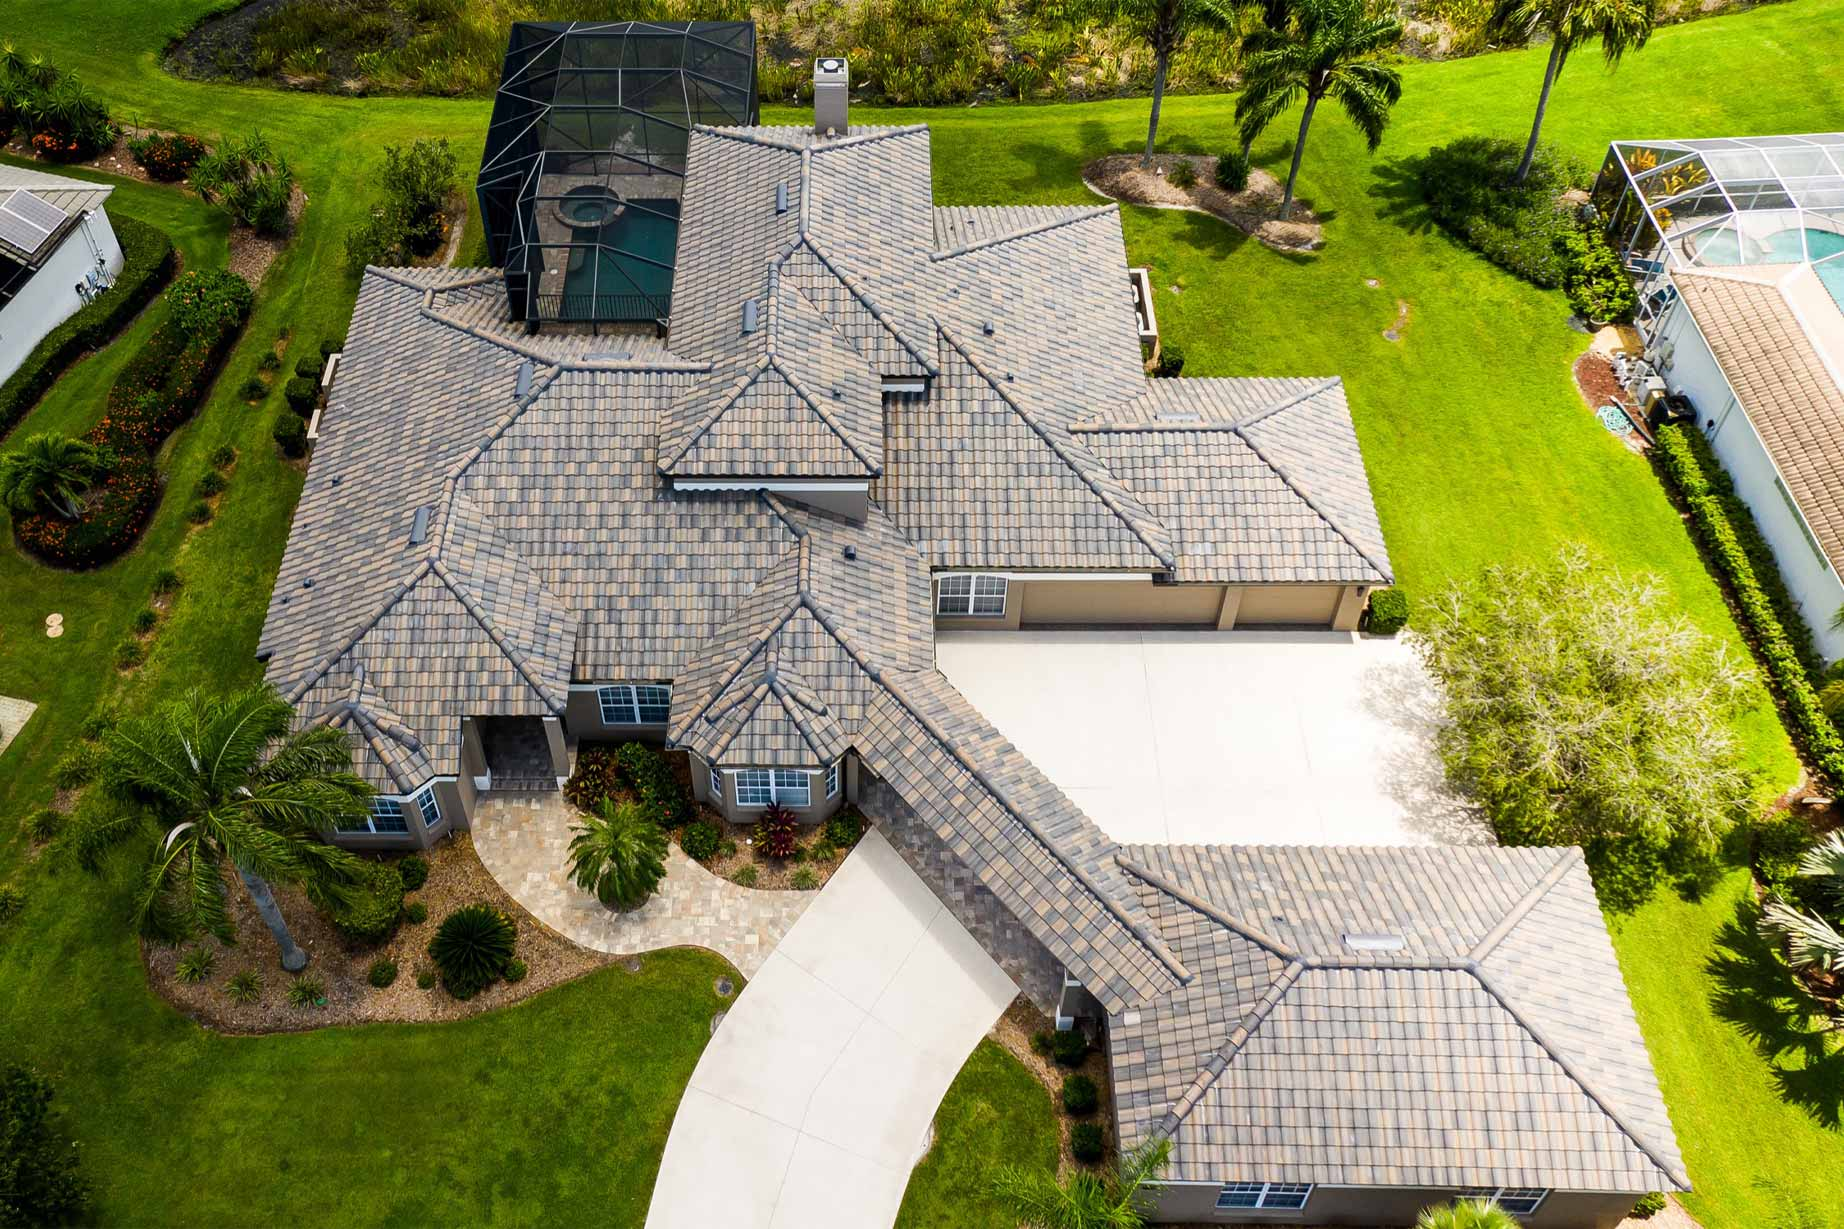 Aerial image of tiled roof